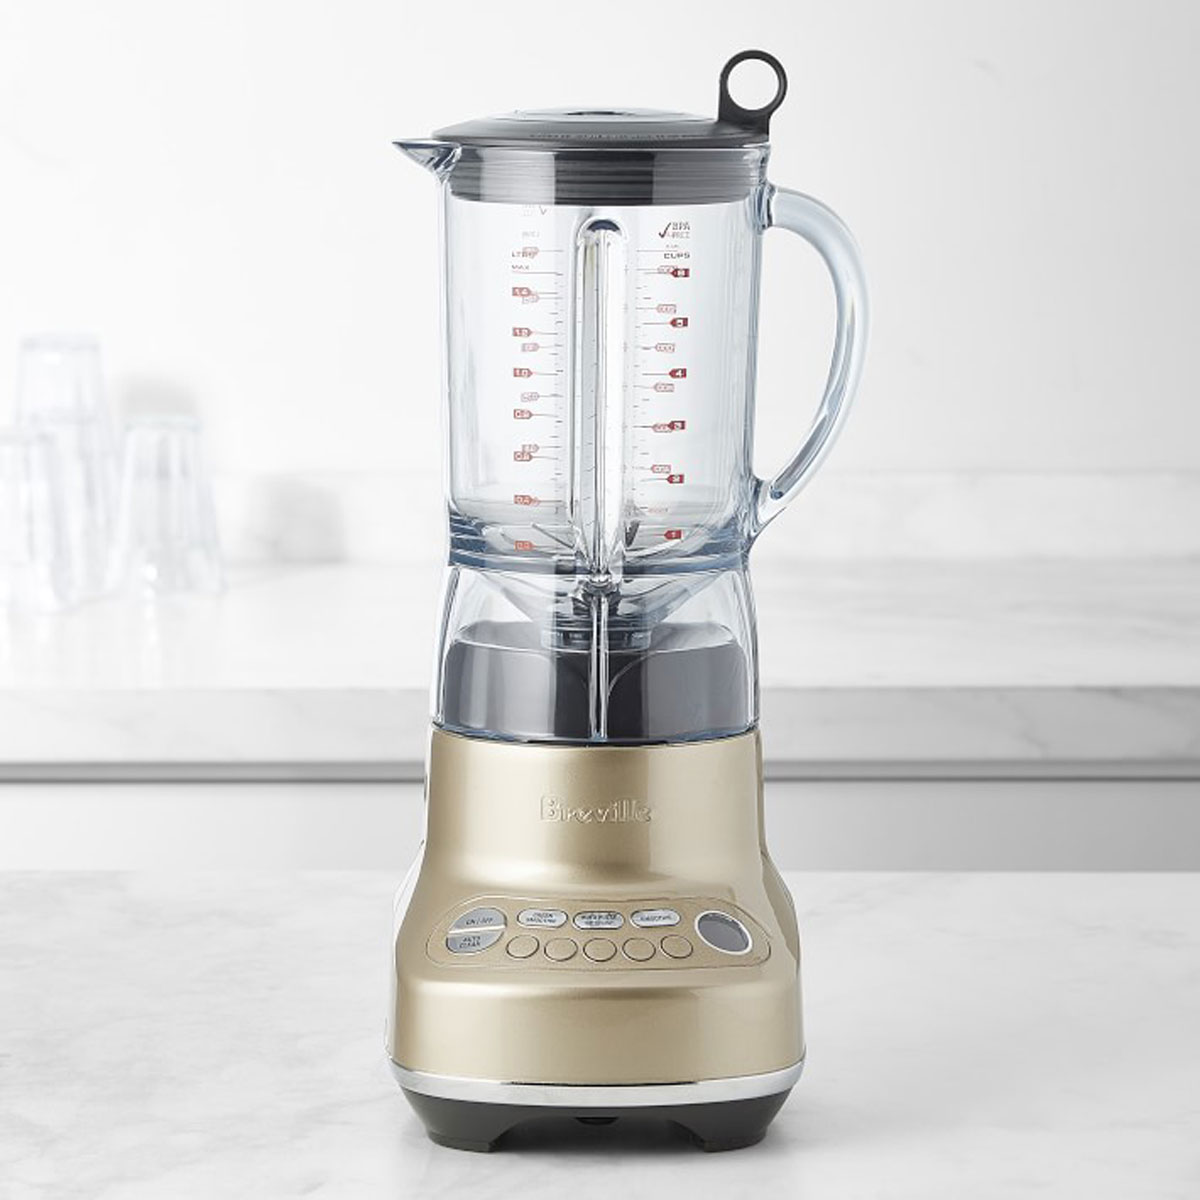 breville blender in champagne